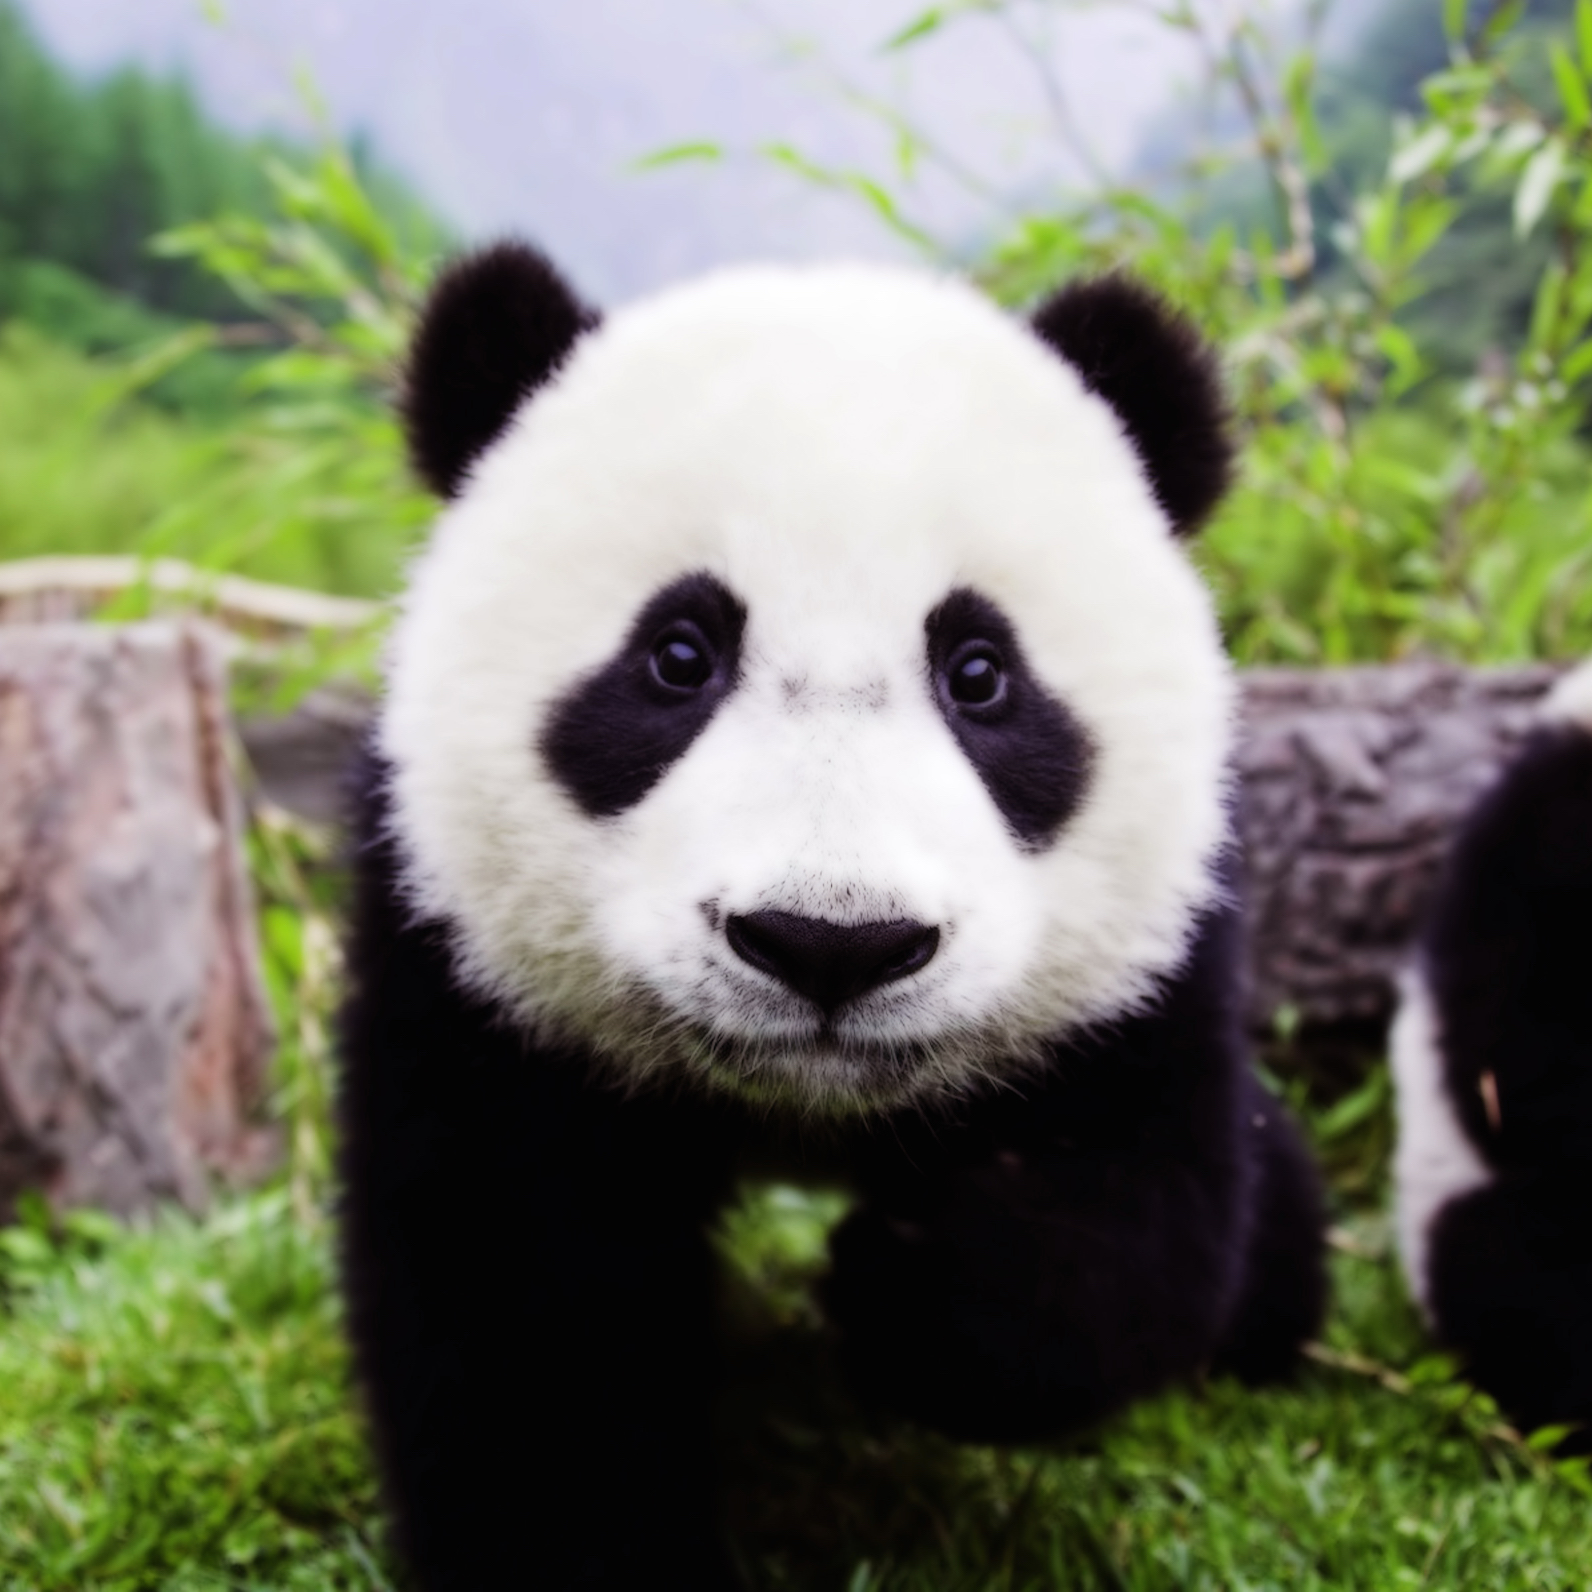 panda-conservation-efforts-zoos